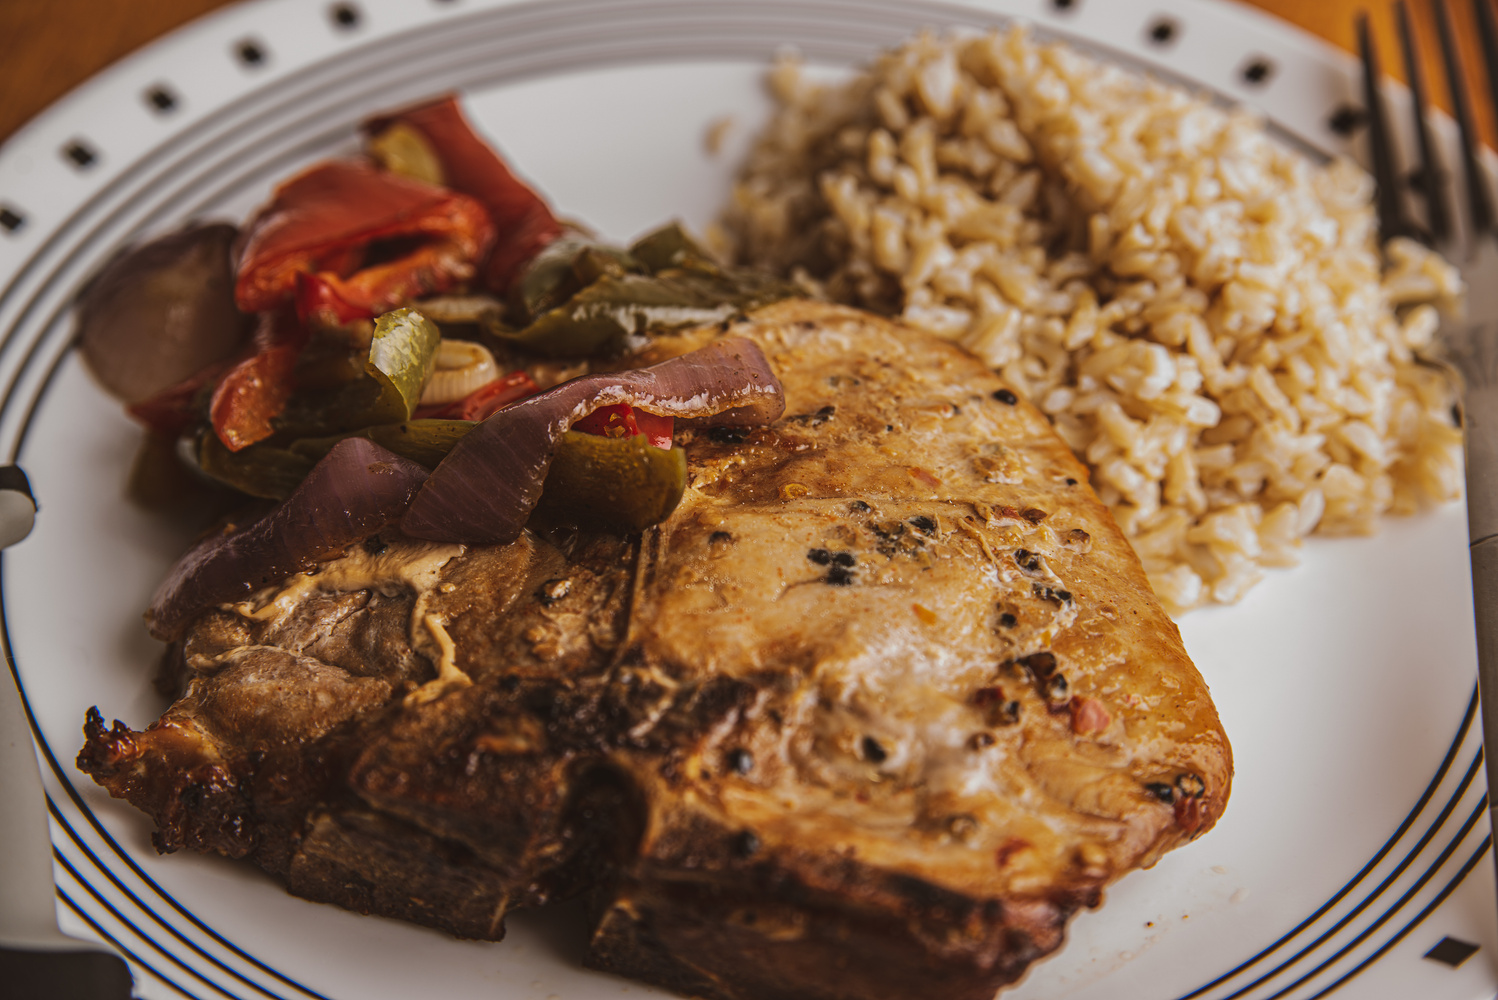 Pork Chop with Brown Rice, and Peppers & Onions by Gary Brosius